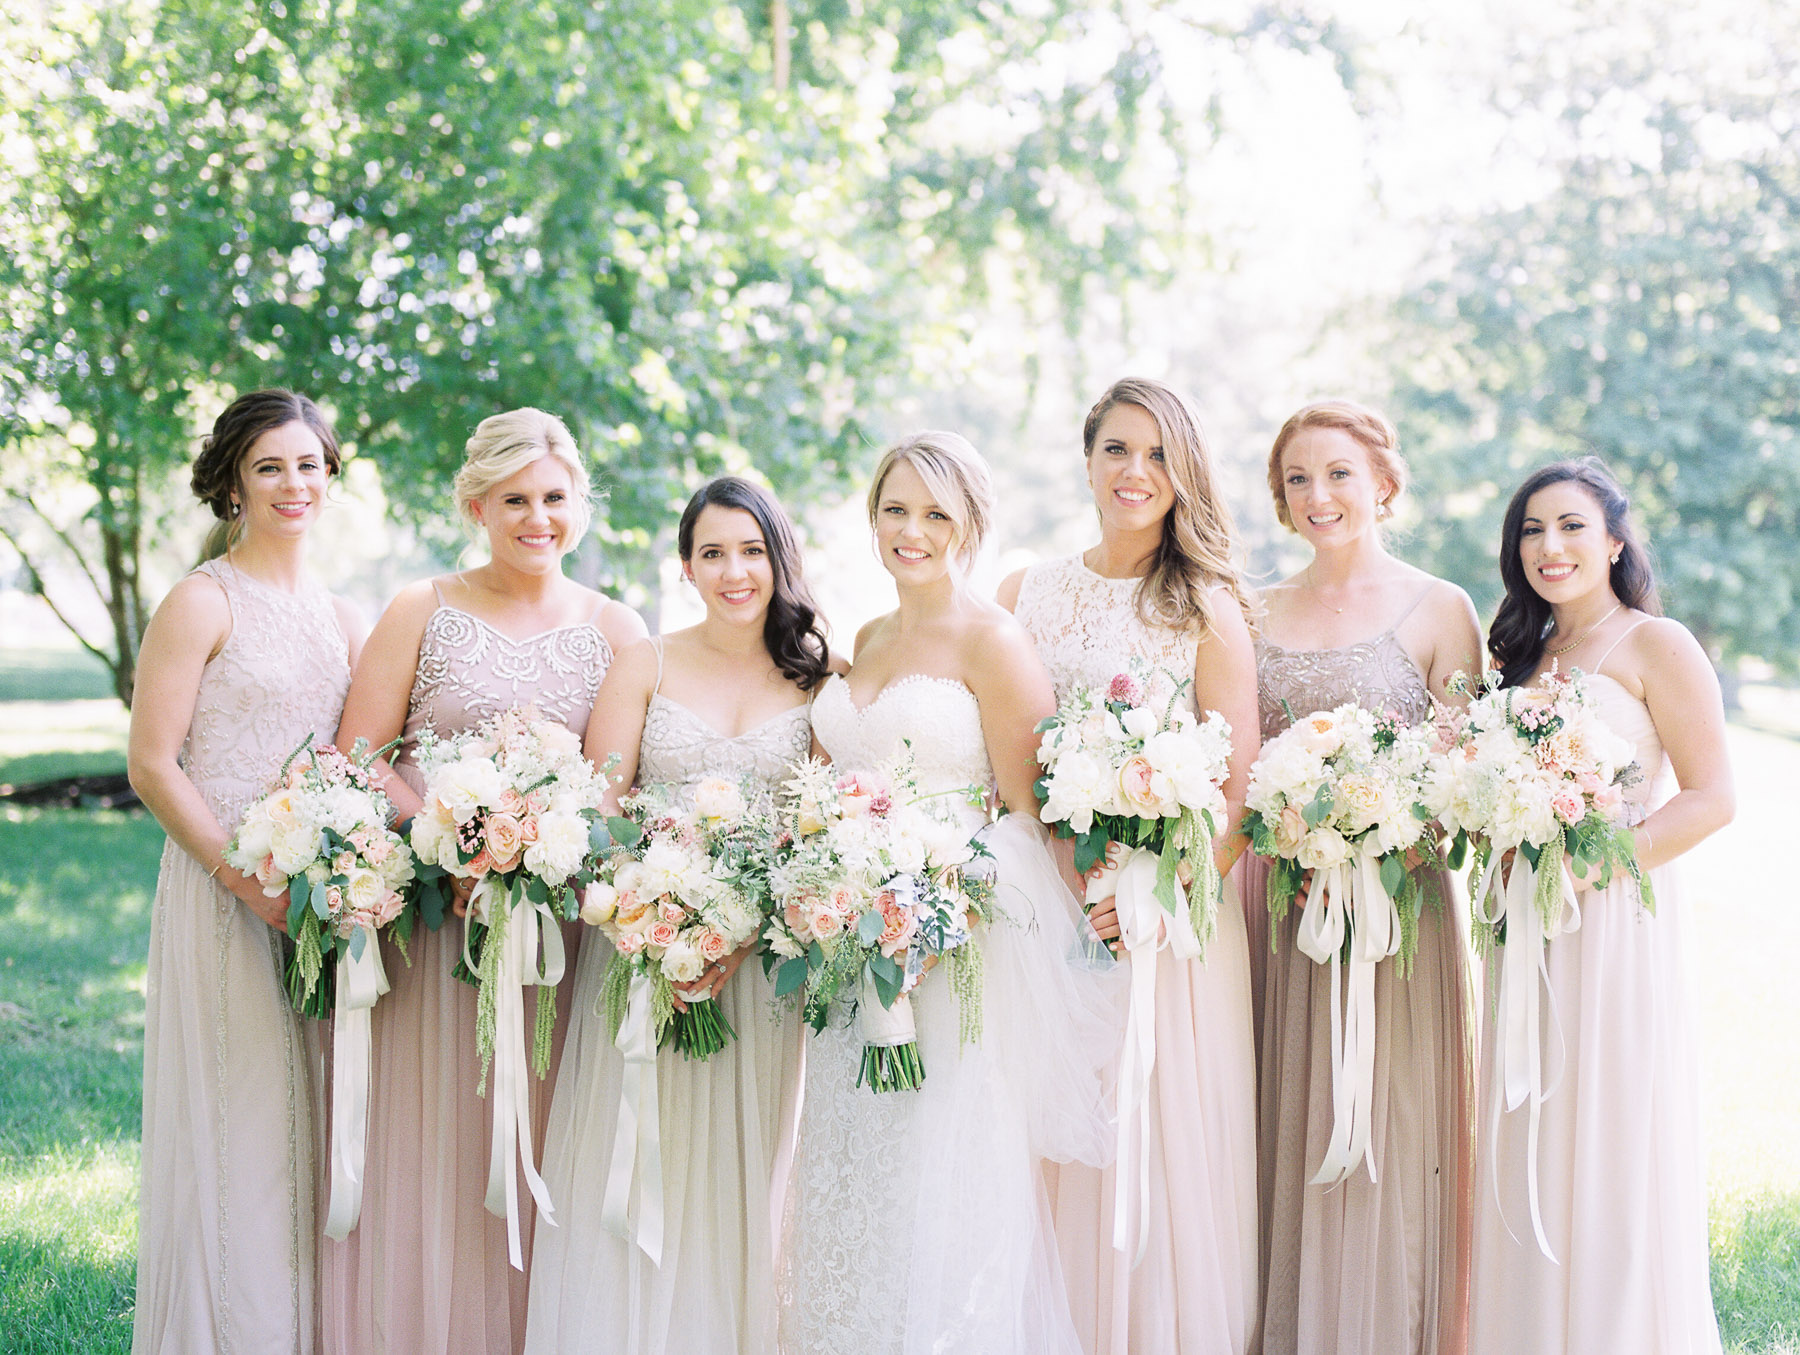 West Point Wedding by Michelle Lange Photography-32.jpg